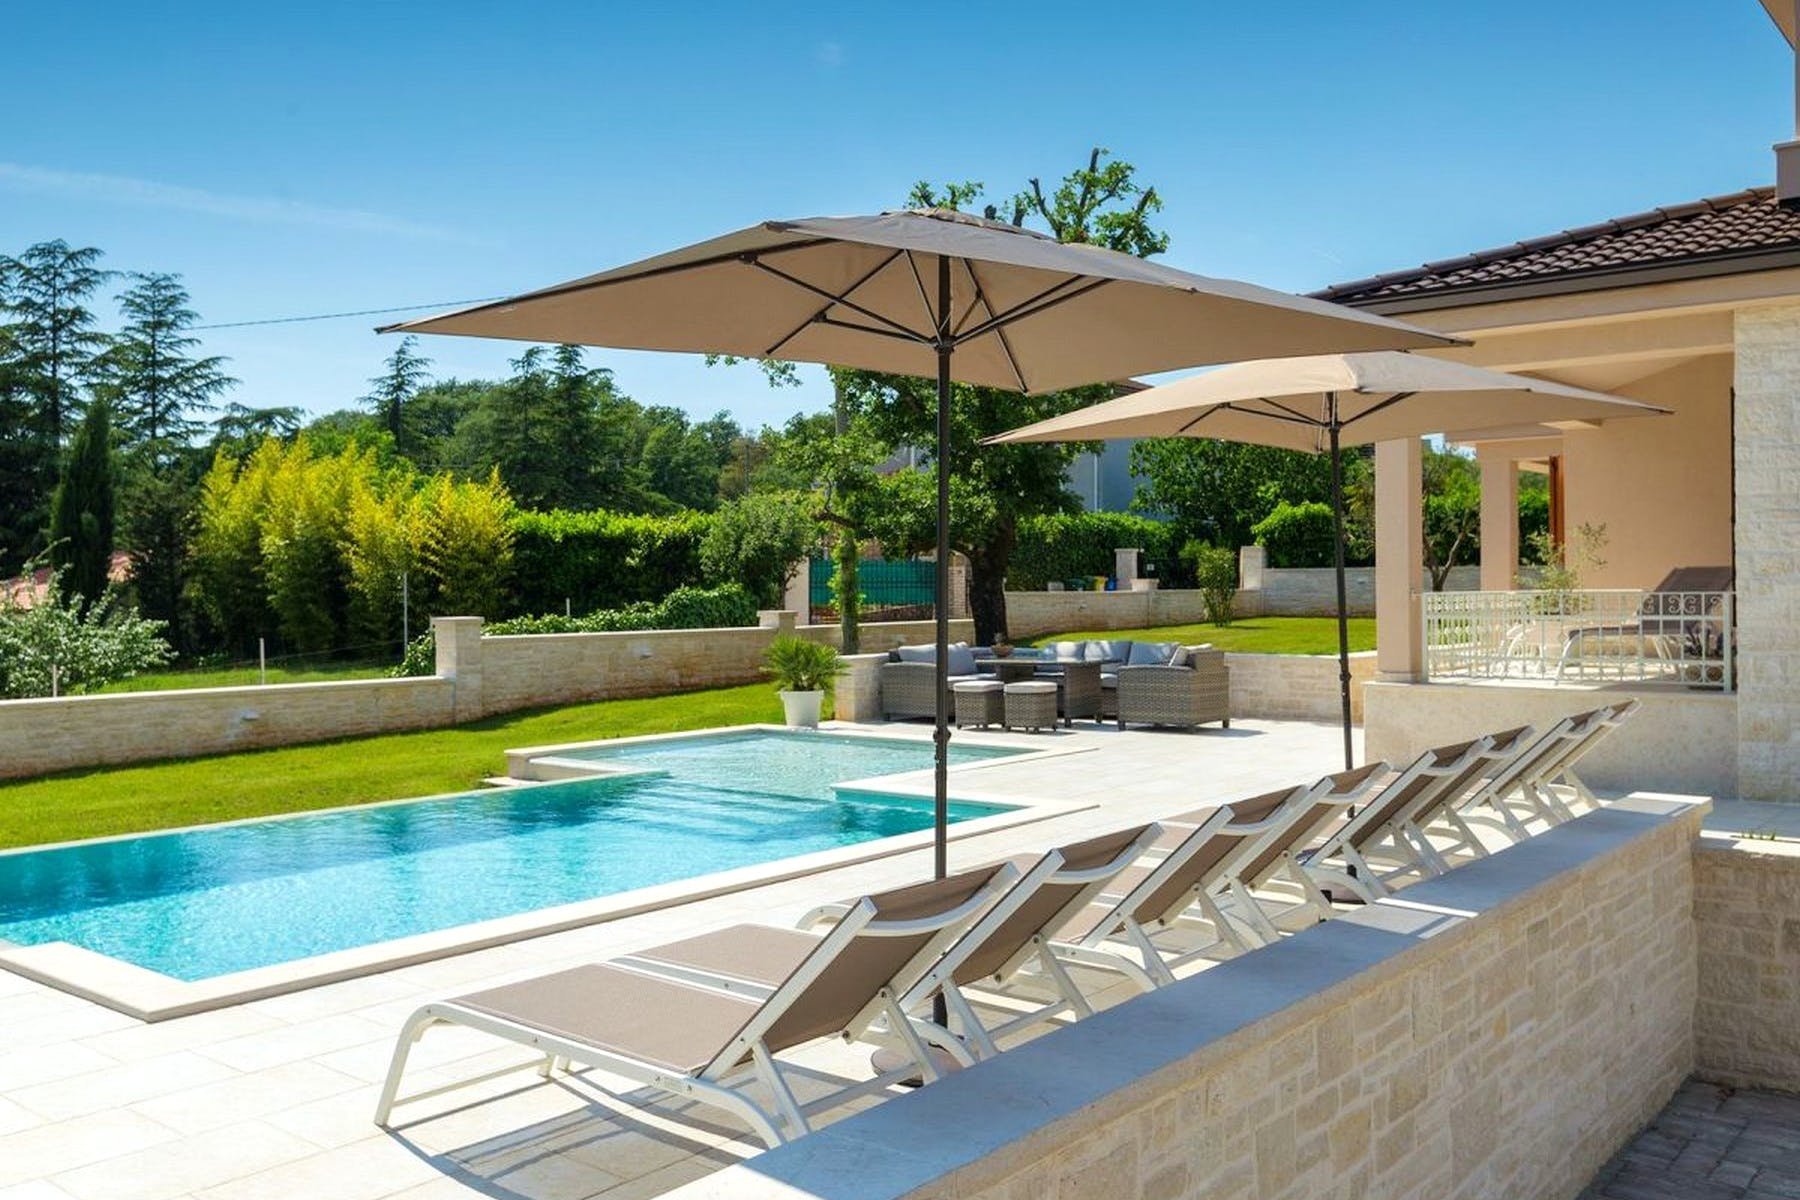 Outside area with swimming pool, sundeck and lounge zone